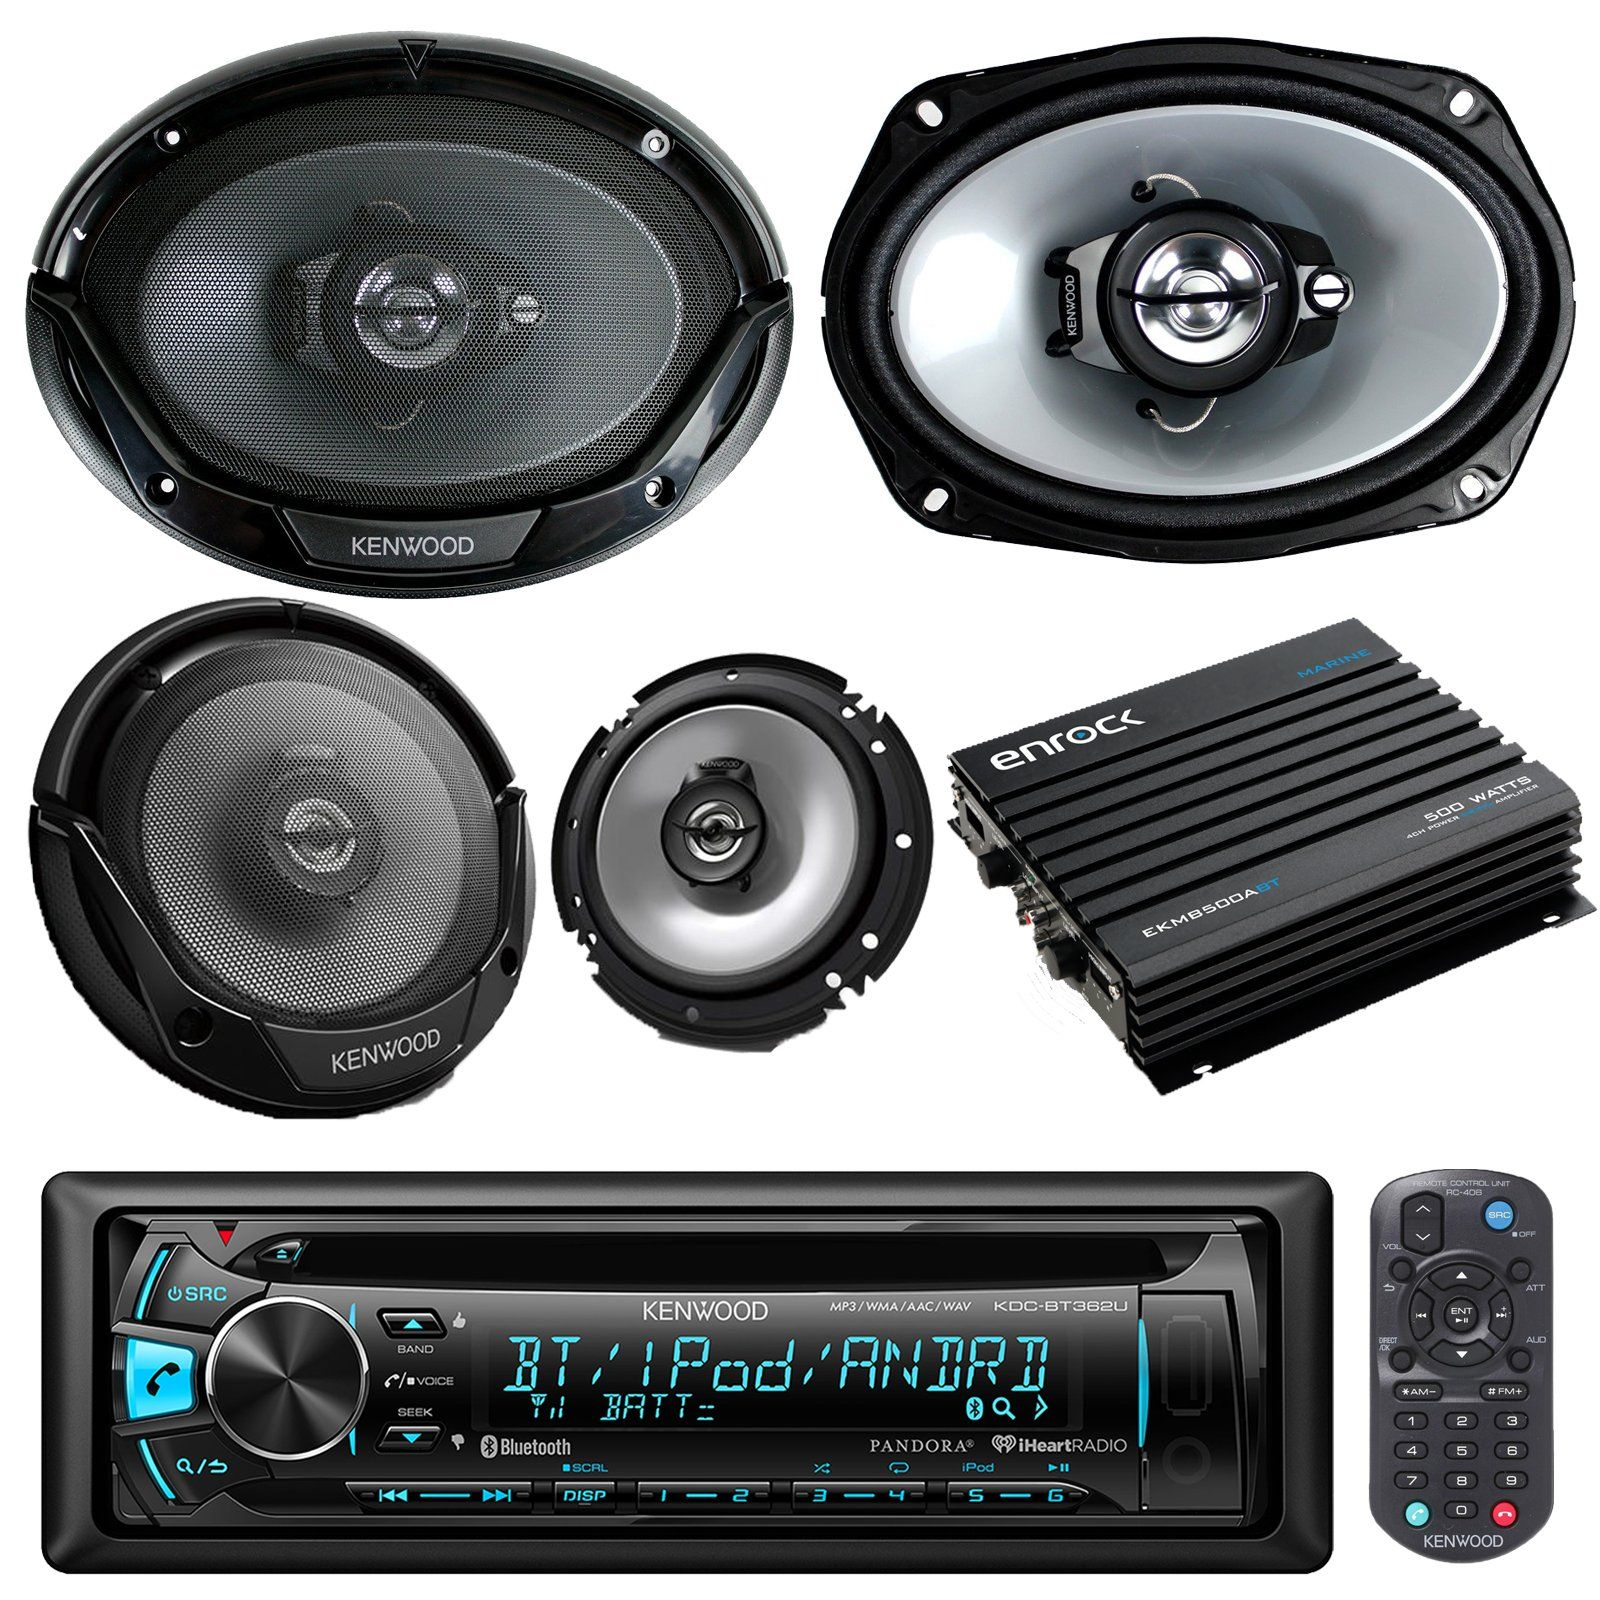 Kenwood KMMBT315U Car Receiver Bluetooth AM/FM Radio With 2 6x9 Inch And 2 6.5 Inch Speakers